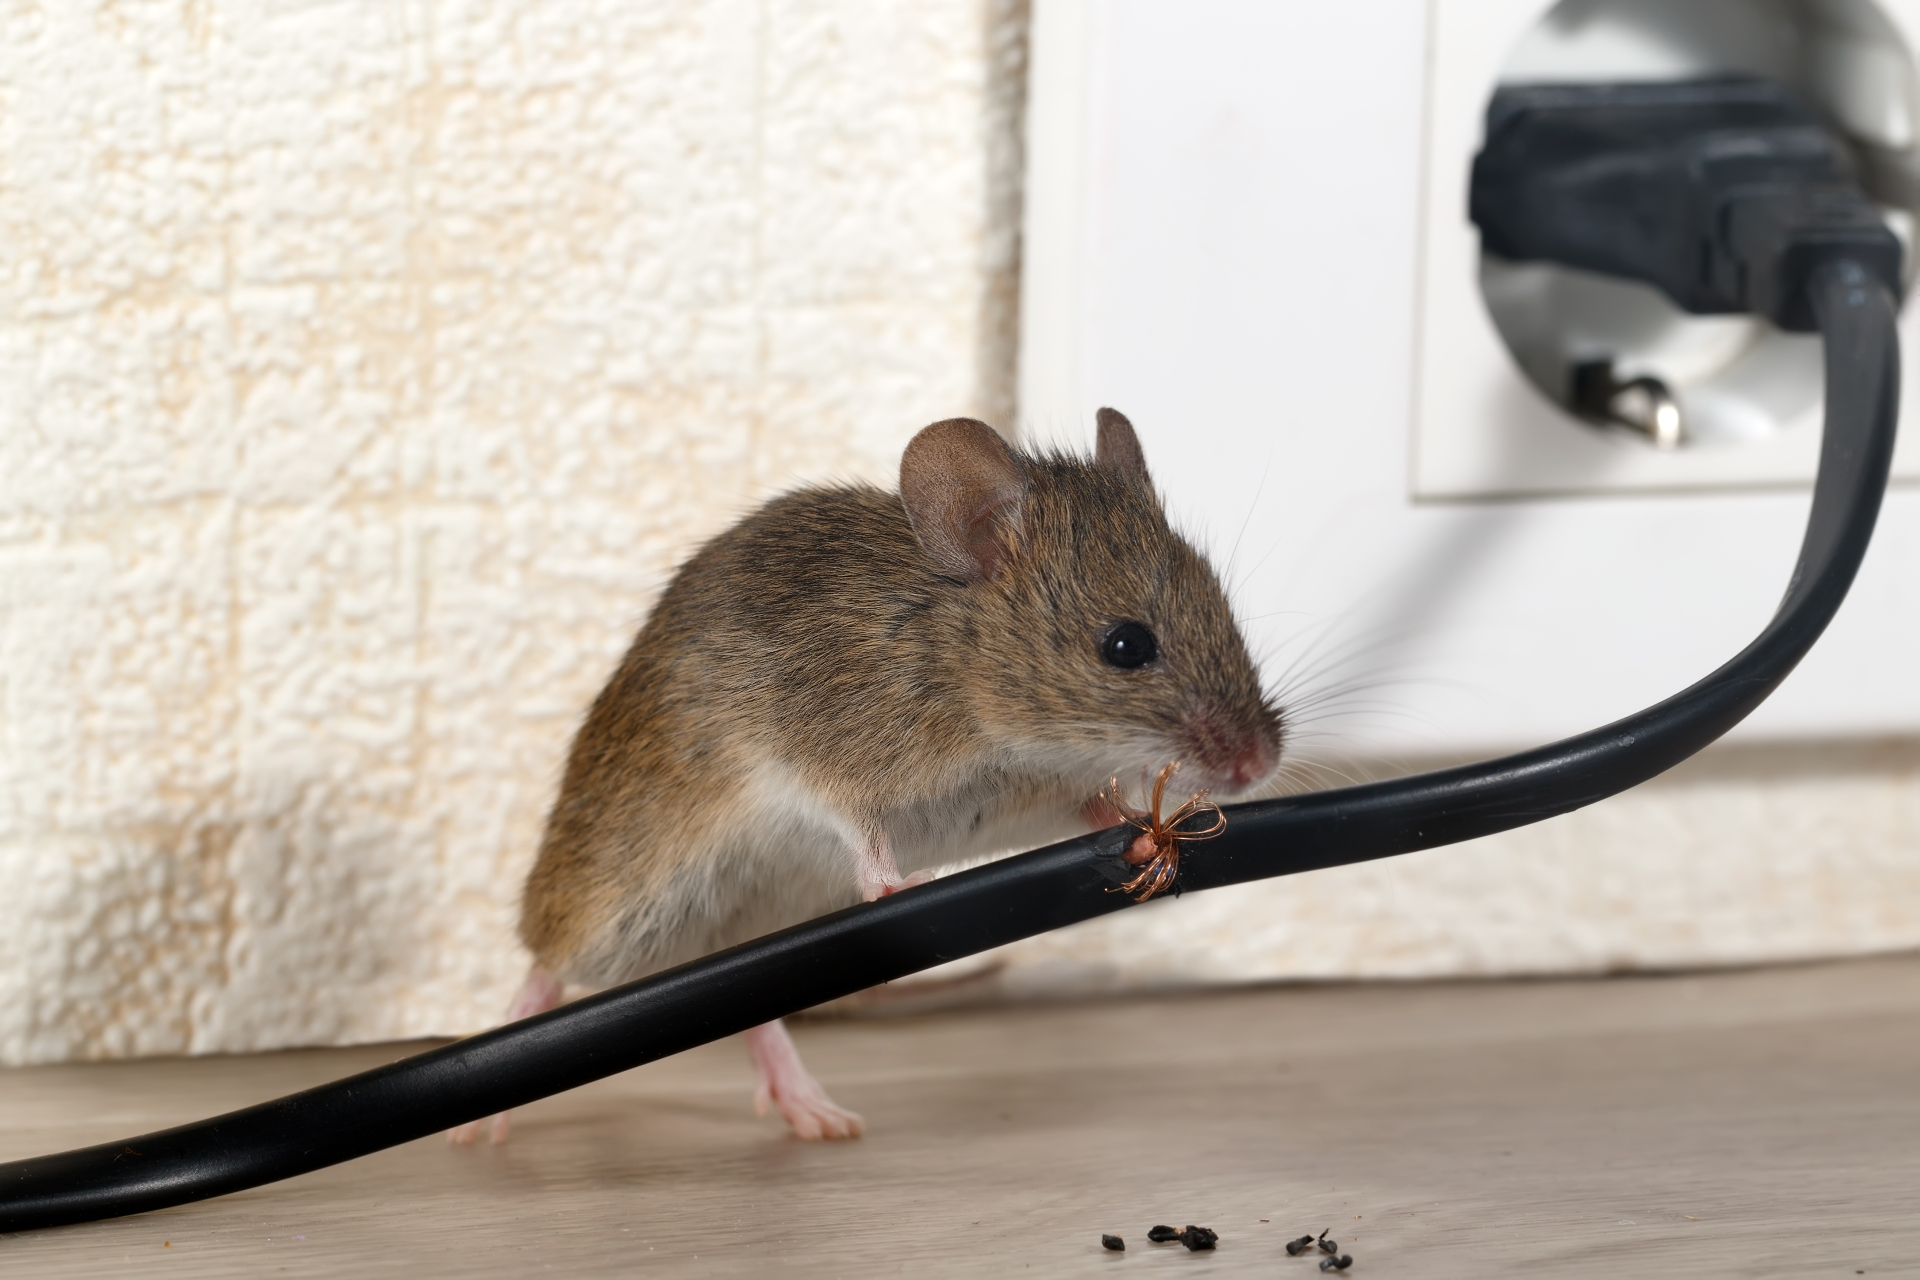 Mice Infestation, Pest Control in Tooting, SW17. Call Now 020 8166 9746